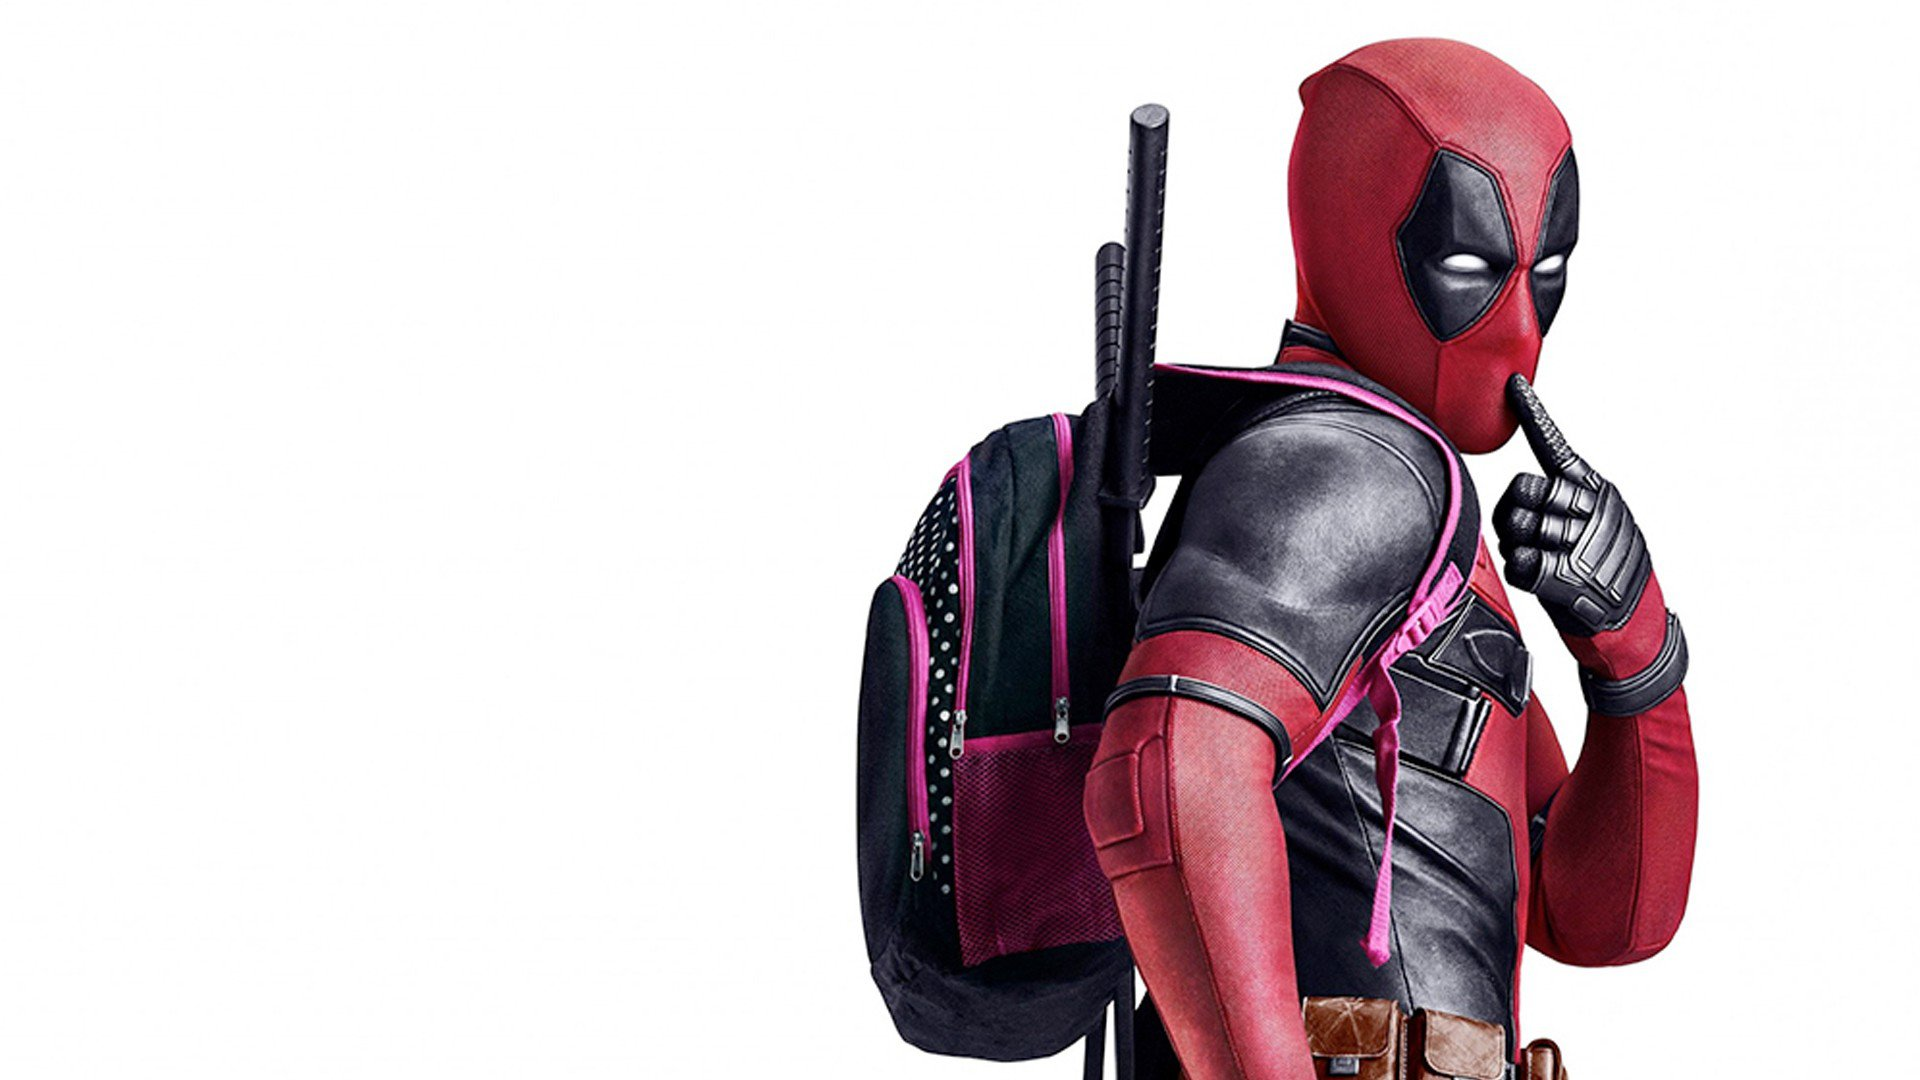 1280x1024 deadpool funny hd 1280x1024 resolution hd 4k